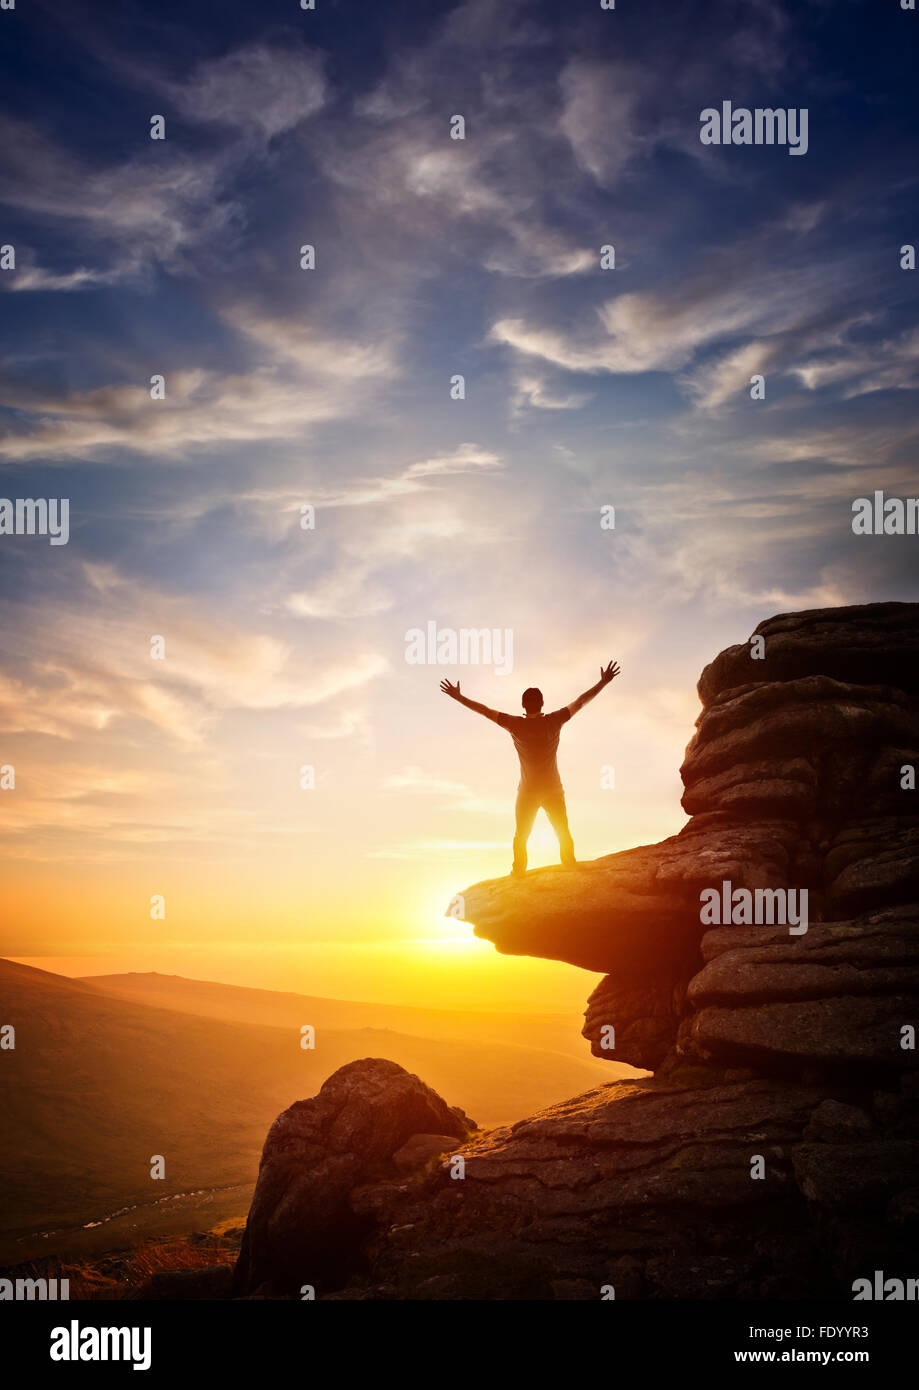 A person reaching up from a high point, set against a sunset. Expressing freedom - Stock Image